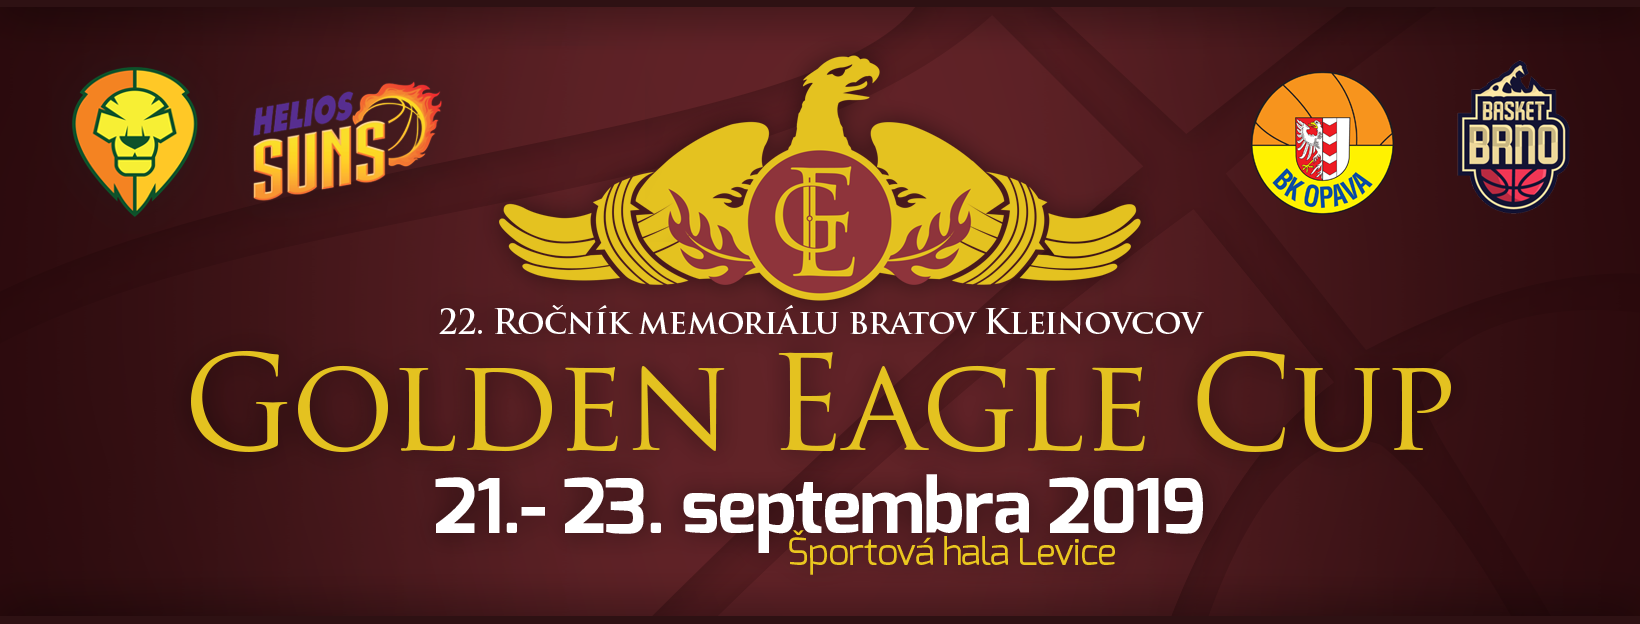 golden eagle cup 2019 fb cover